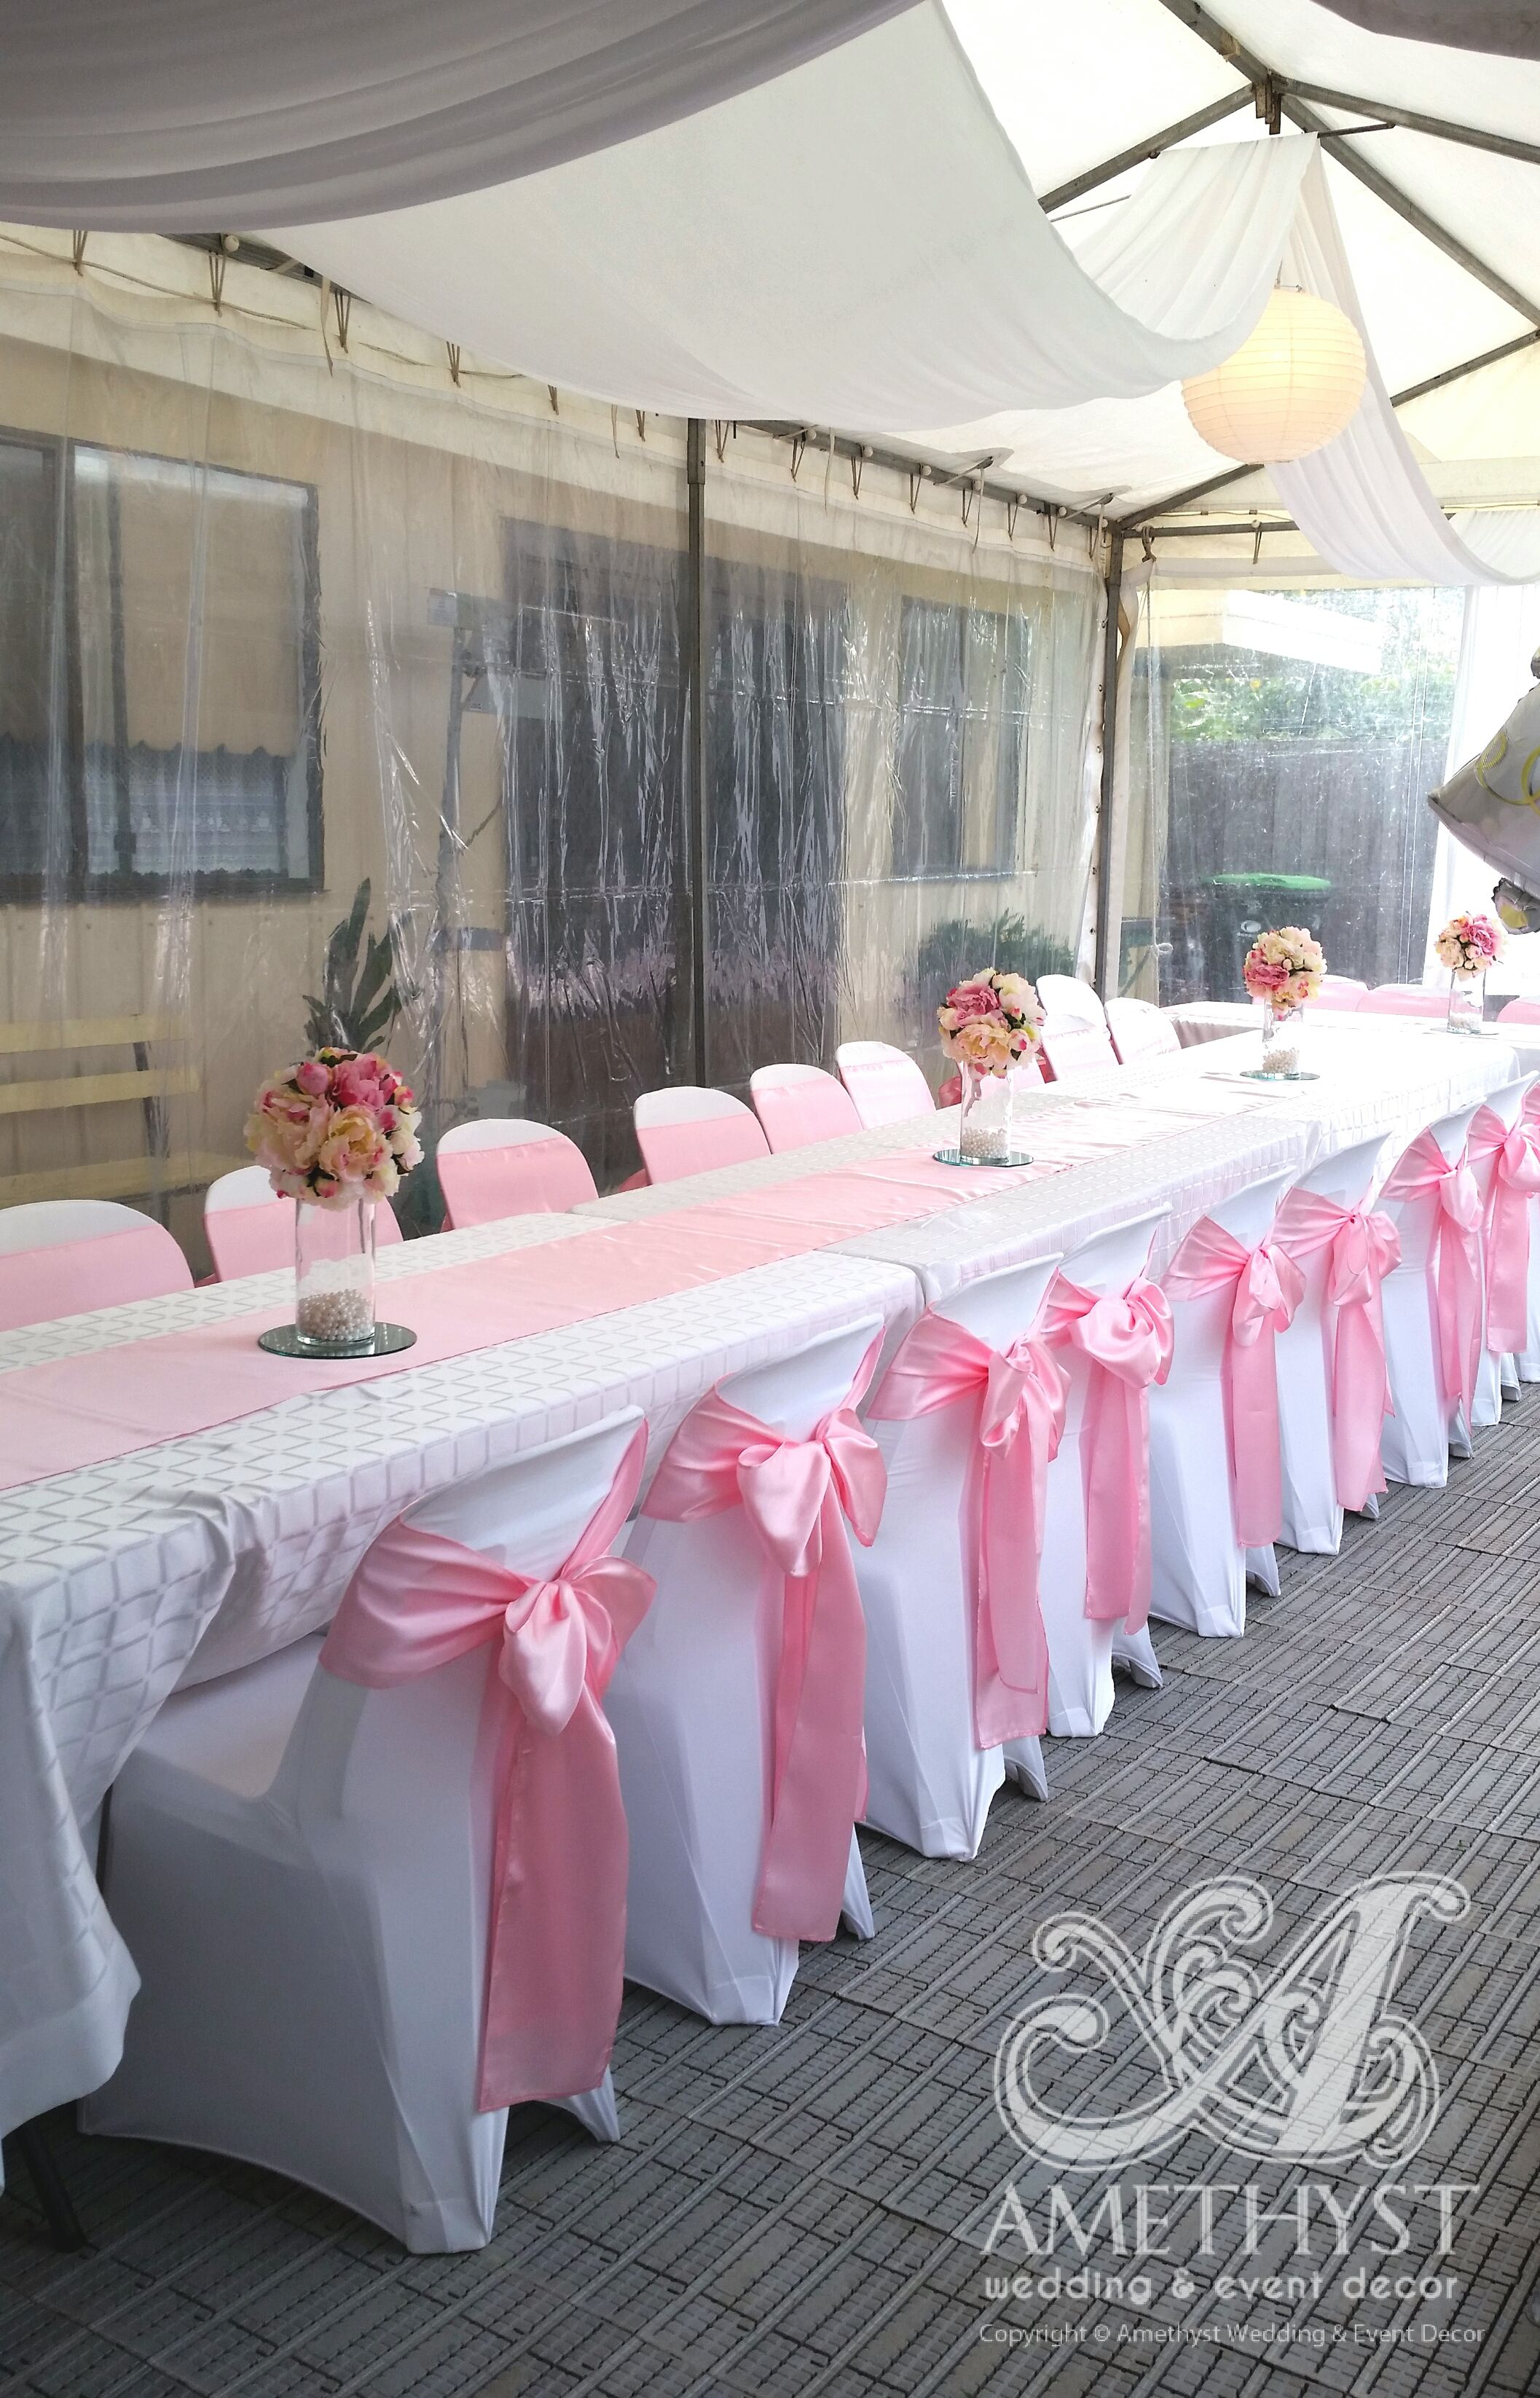 chair covers for plastic stacking chairs sleeper ikea dress up regular with our stretchy lycra cover light pink satin sash matching table runners cute centerpieces complete